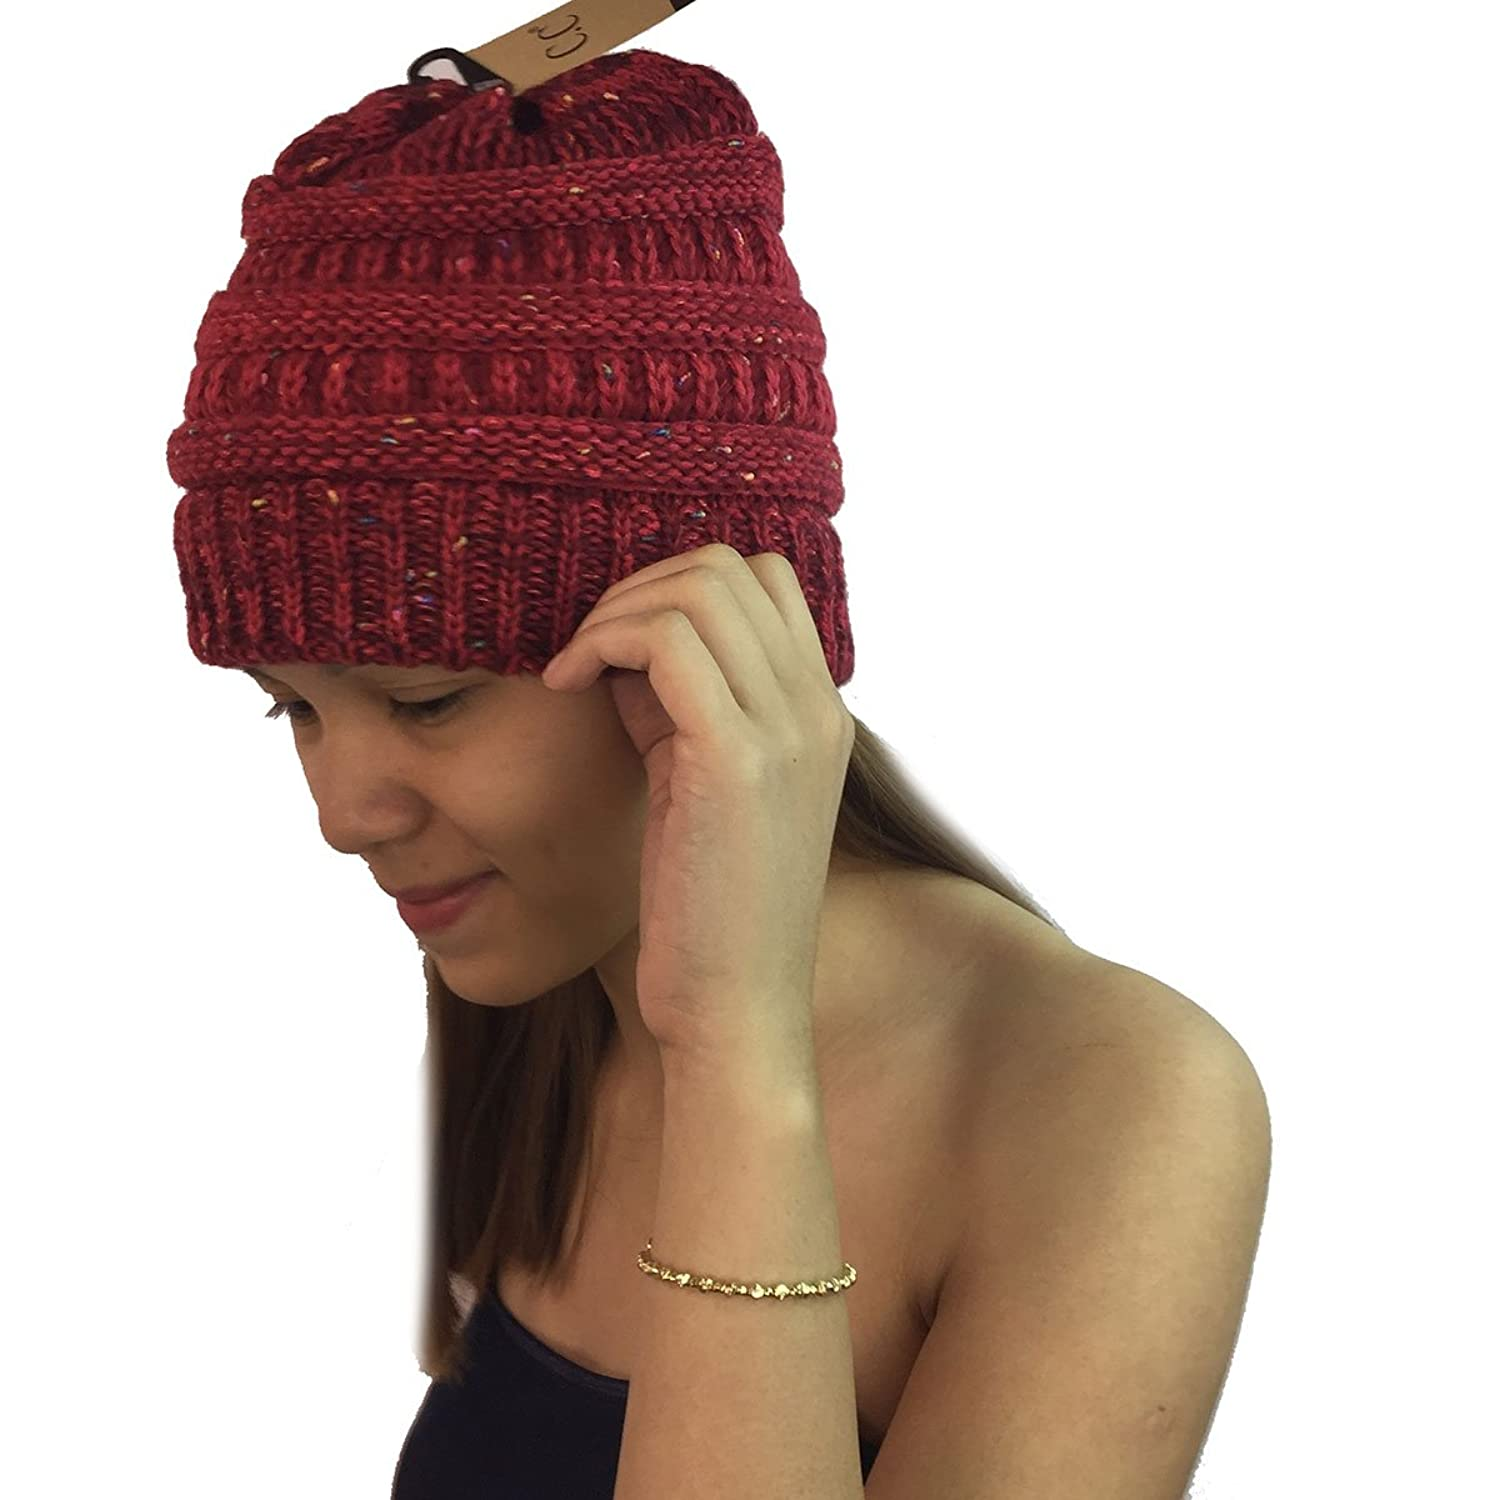 Unisex Trendy Two Tone Warm Cable Knit Thick Beanie Caps Soft Stretchy Winter Hats